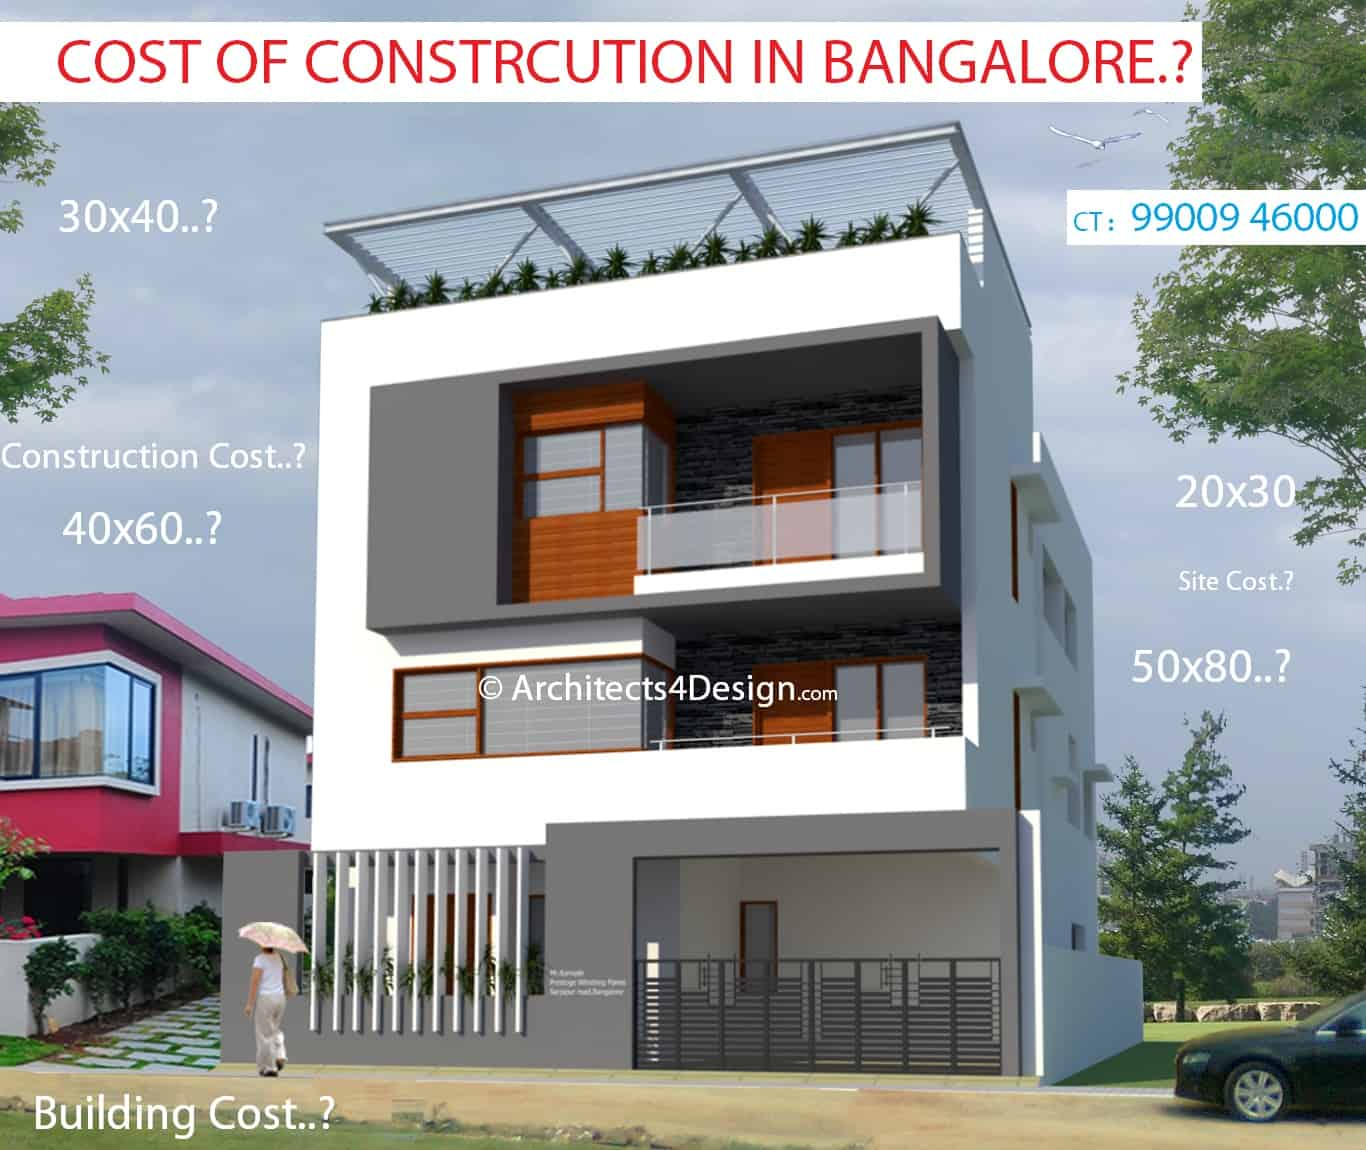 Construction Cost in Bangalore A4D | Calculate Cost of